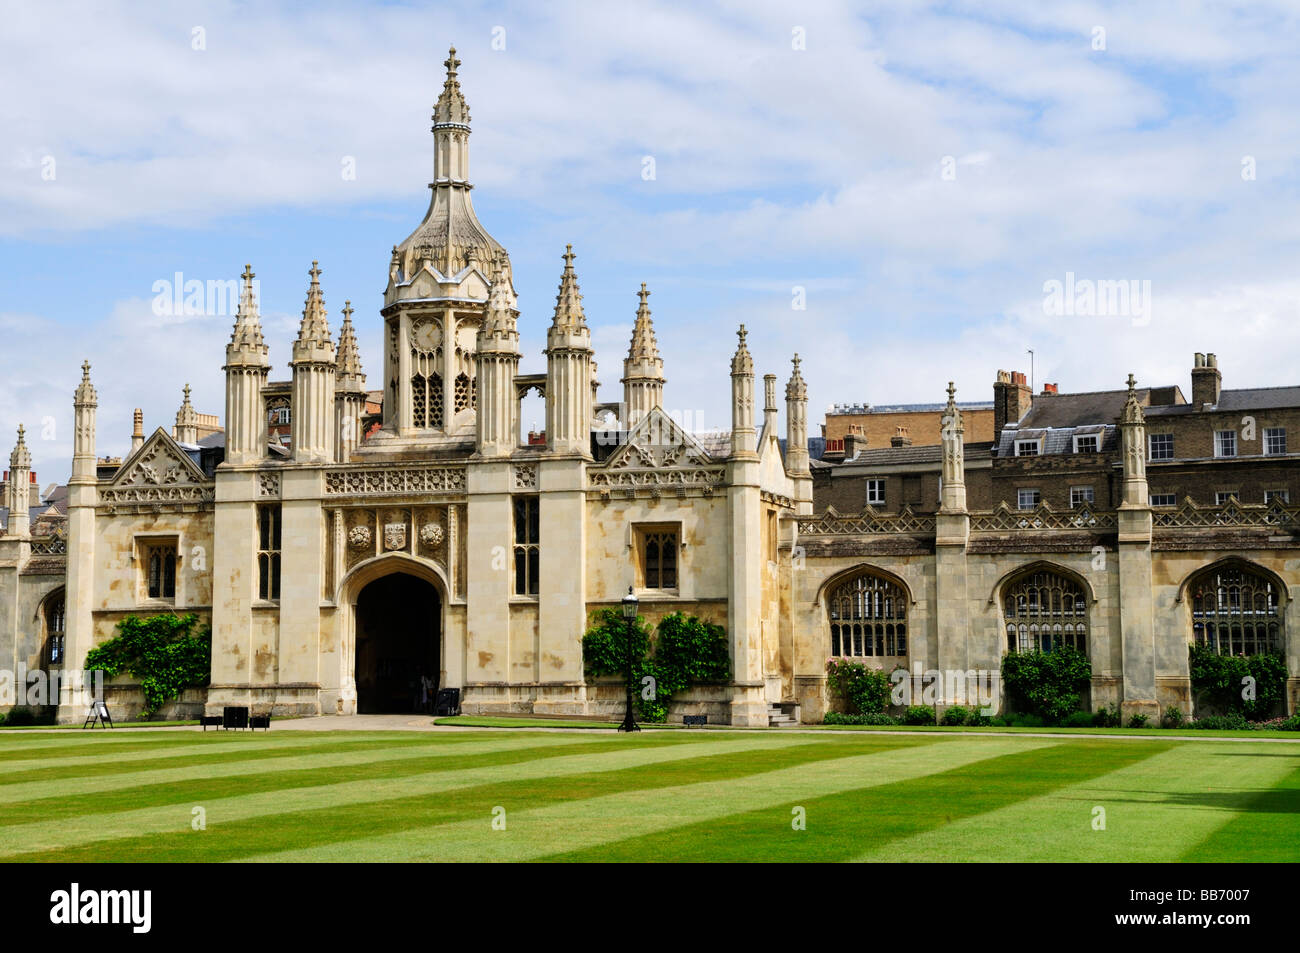 Kings College Gatehouse viewed from inside First Court, Kings College Cambridge England Uk - Stock Image